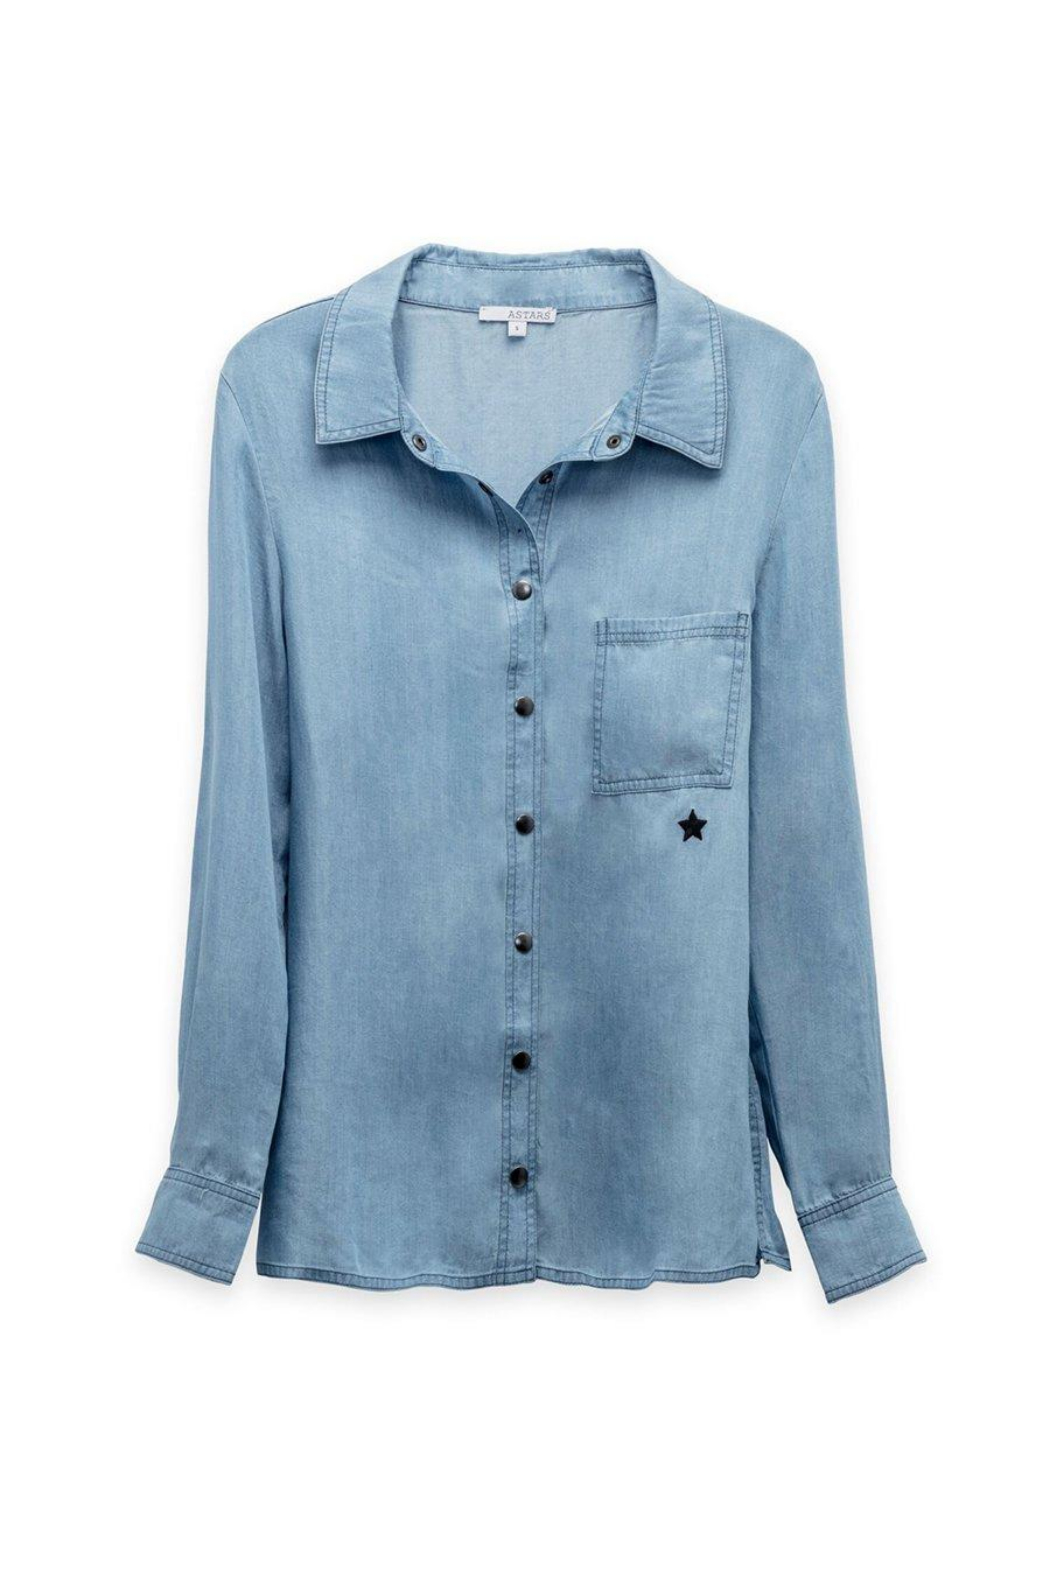 Astars Vintage Chambray Star Top - Side Cropped Image